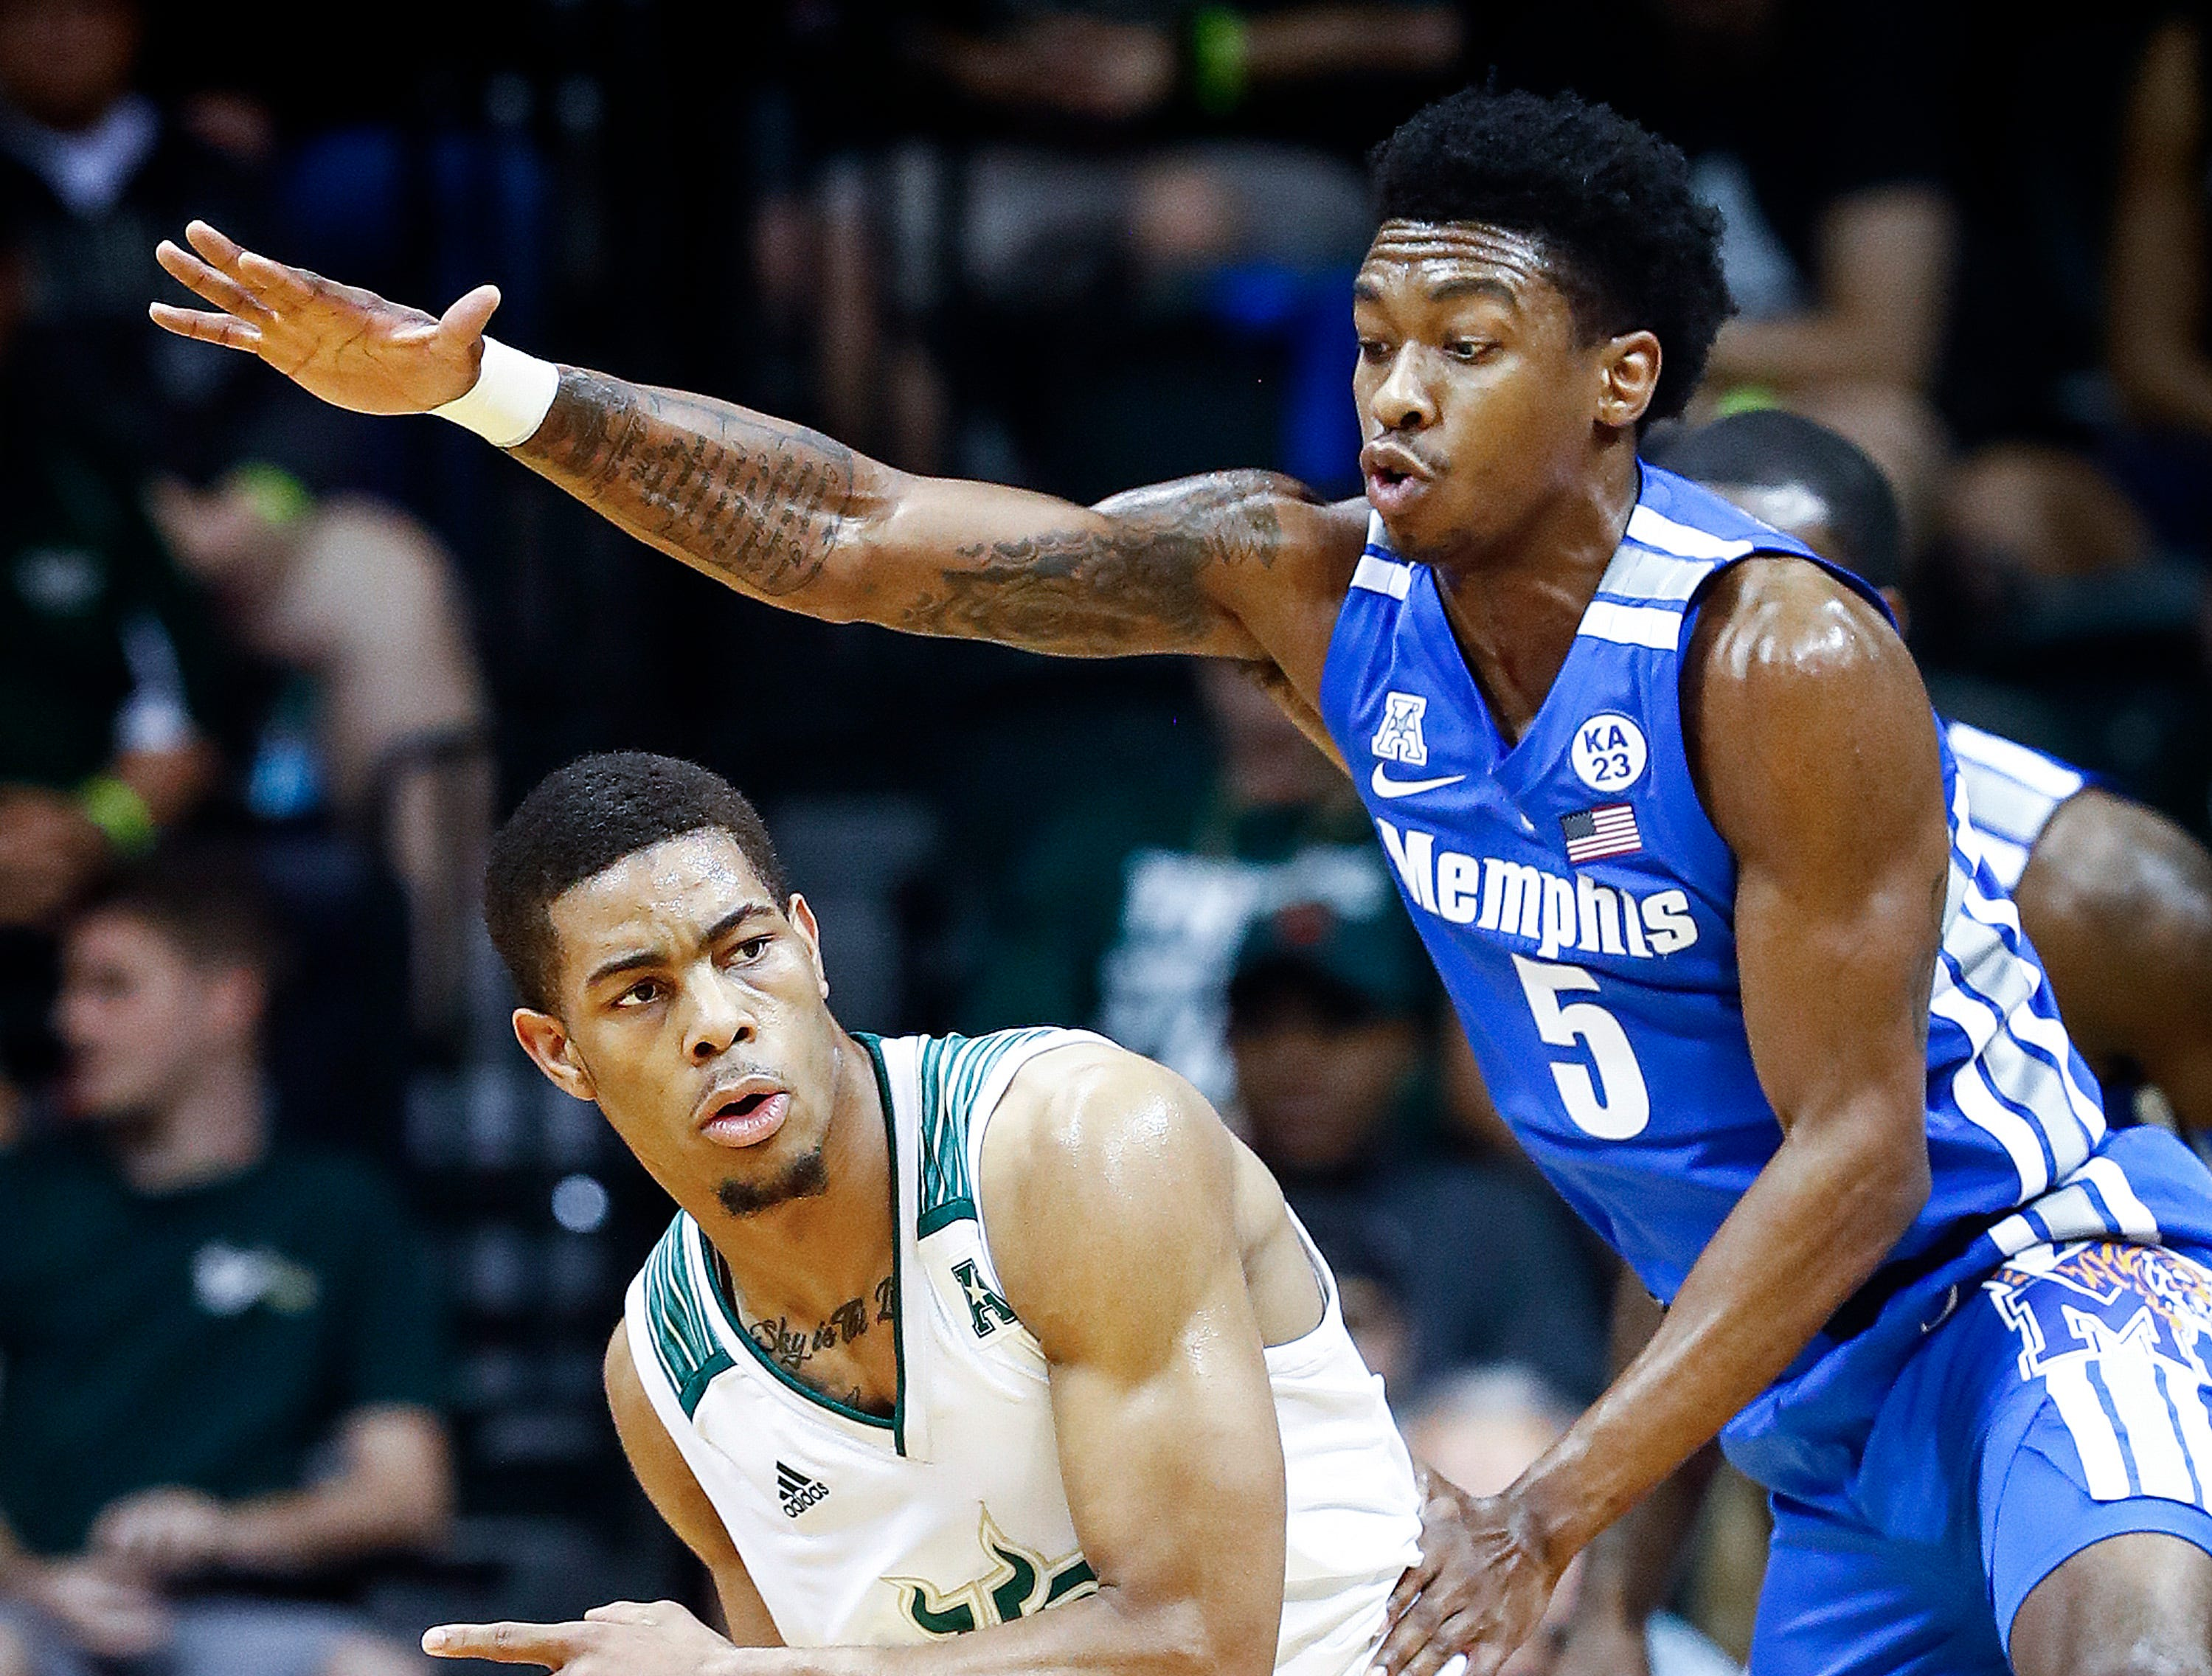 Memphis defender Kareem Brewton Jr. (right) applies defensive pressure to USF guard David Collins (left) during action in Tampa, Saturday, February 2, 2019.